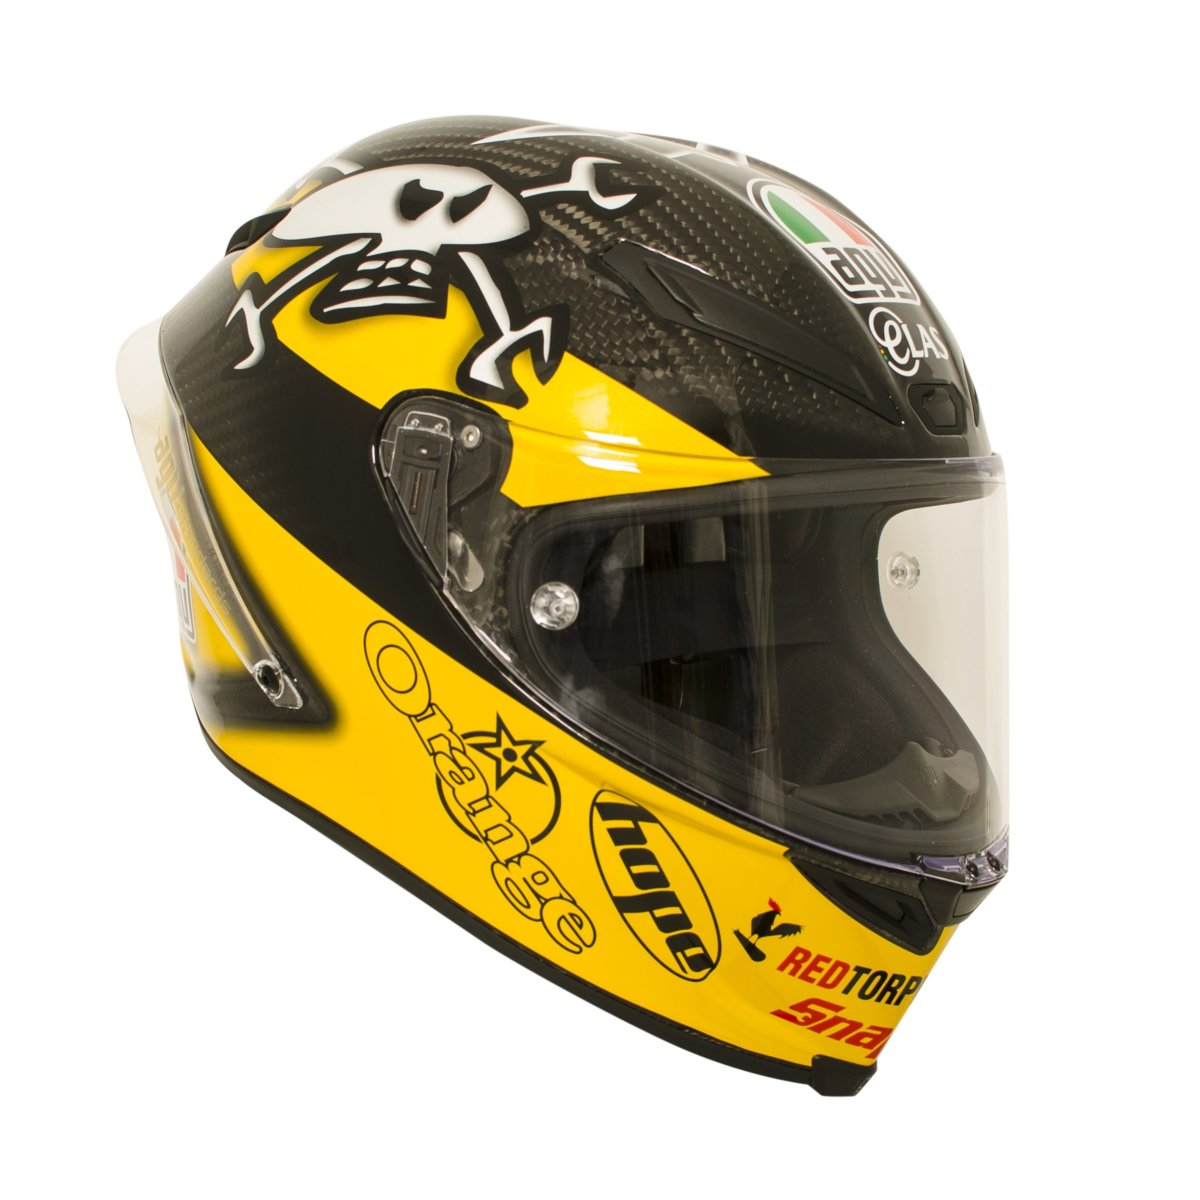 agv-pista-gp-guy-martin-limited-edition-right (1).jpg